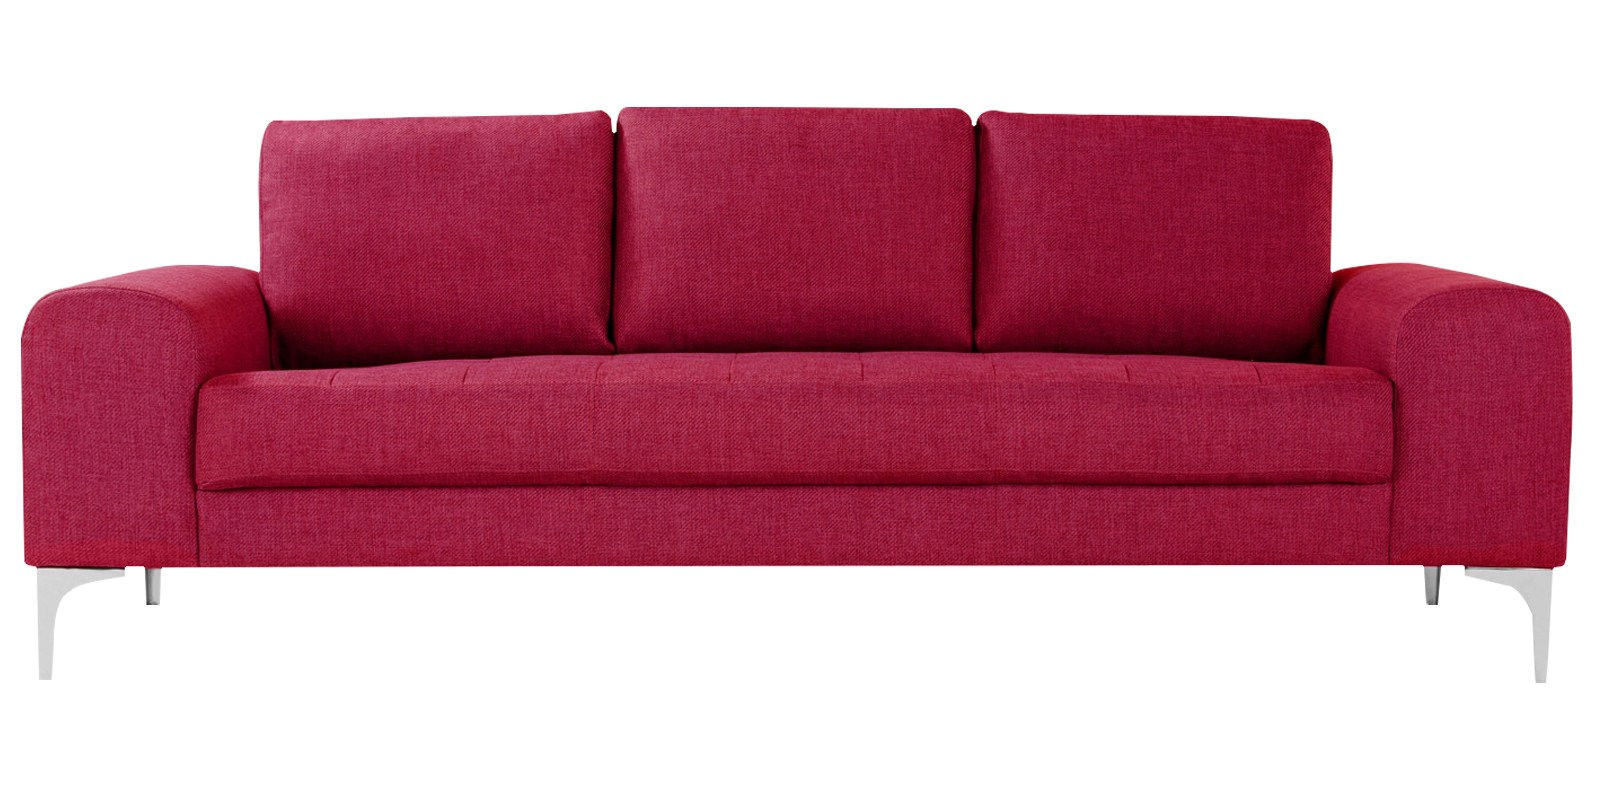 sofa set online shopping stand stunning three seater in pink colour dreamzz